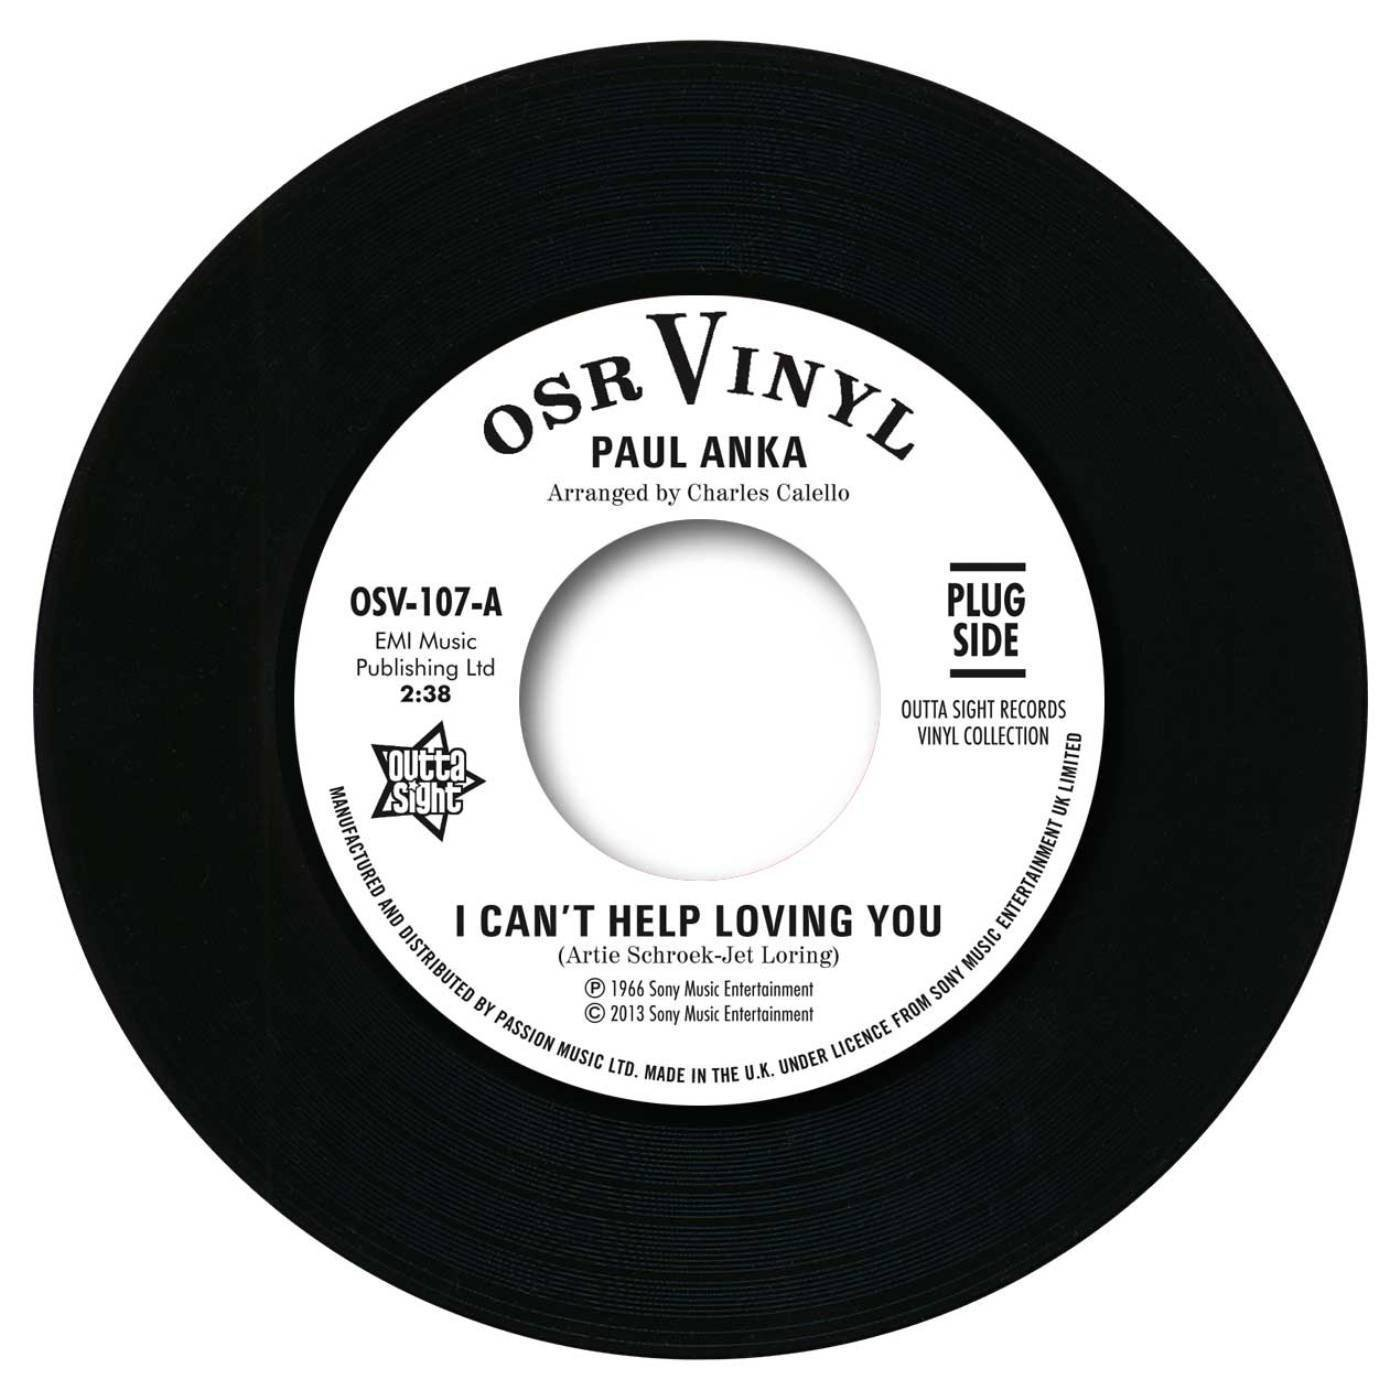 Paul Anka – I Can't Help Loving You / When We Get There 45 (Outta Sight) 7″ Vinyl